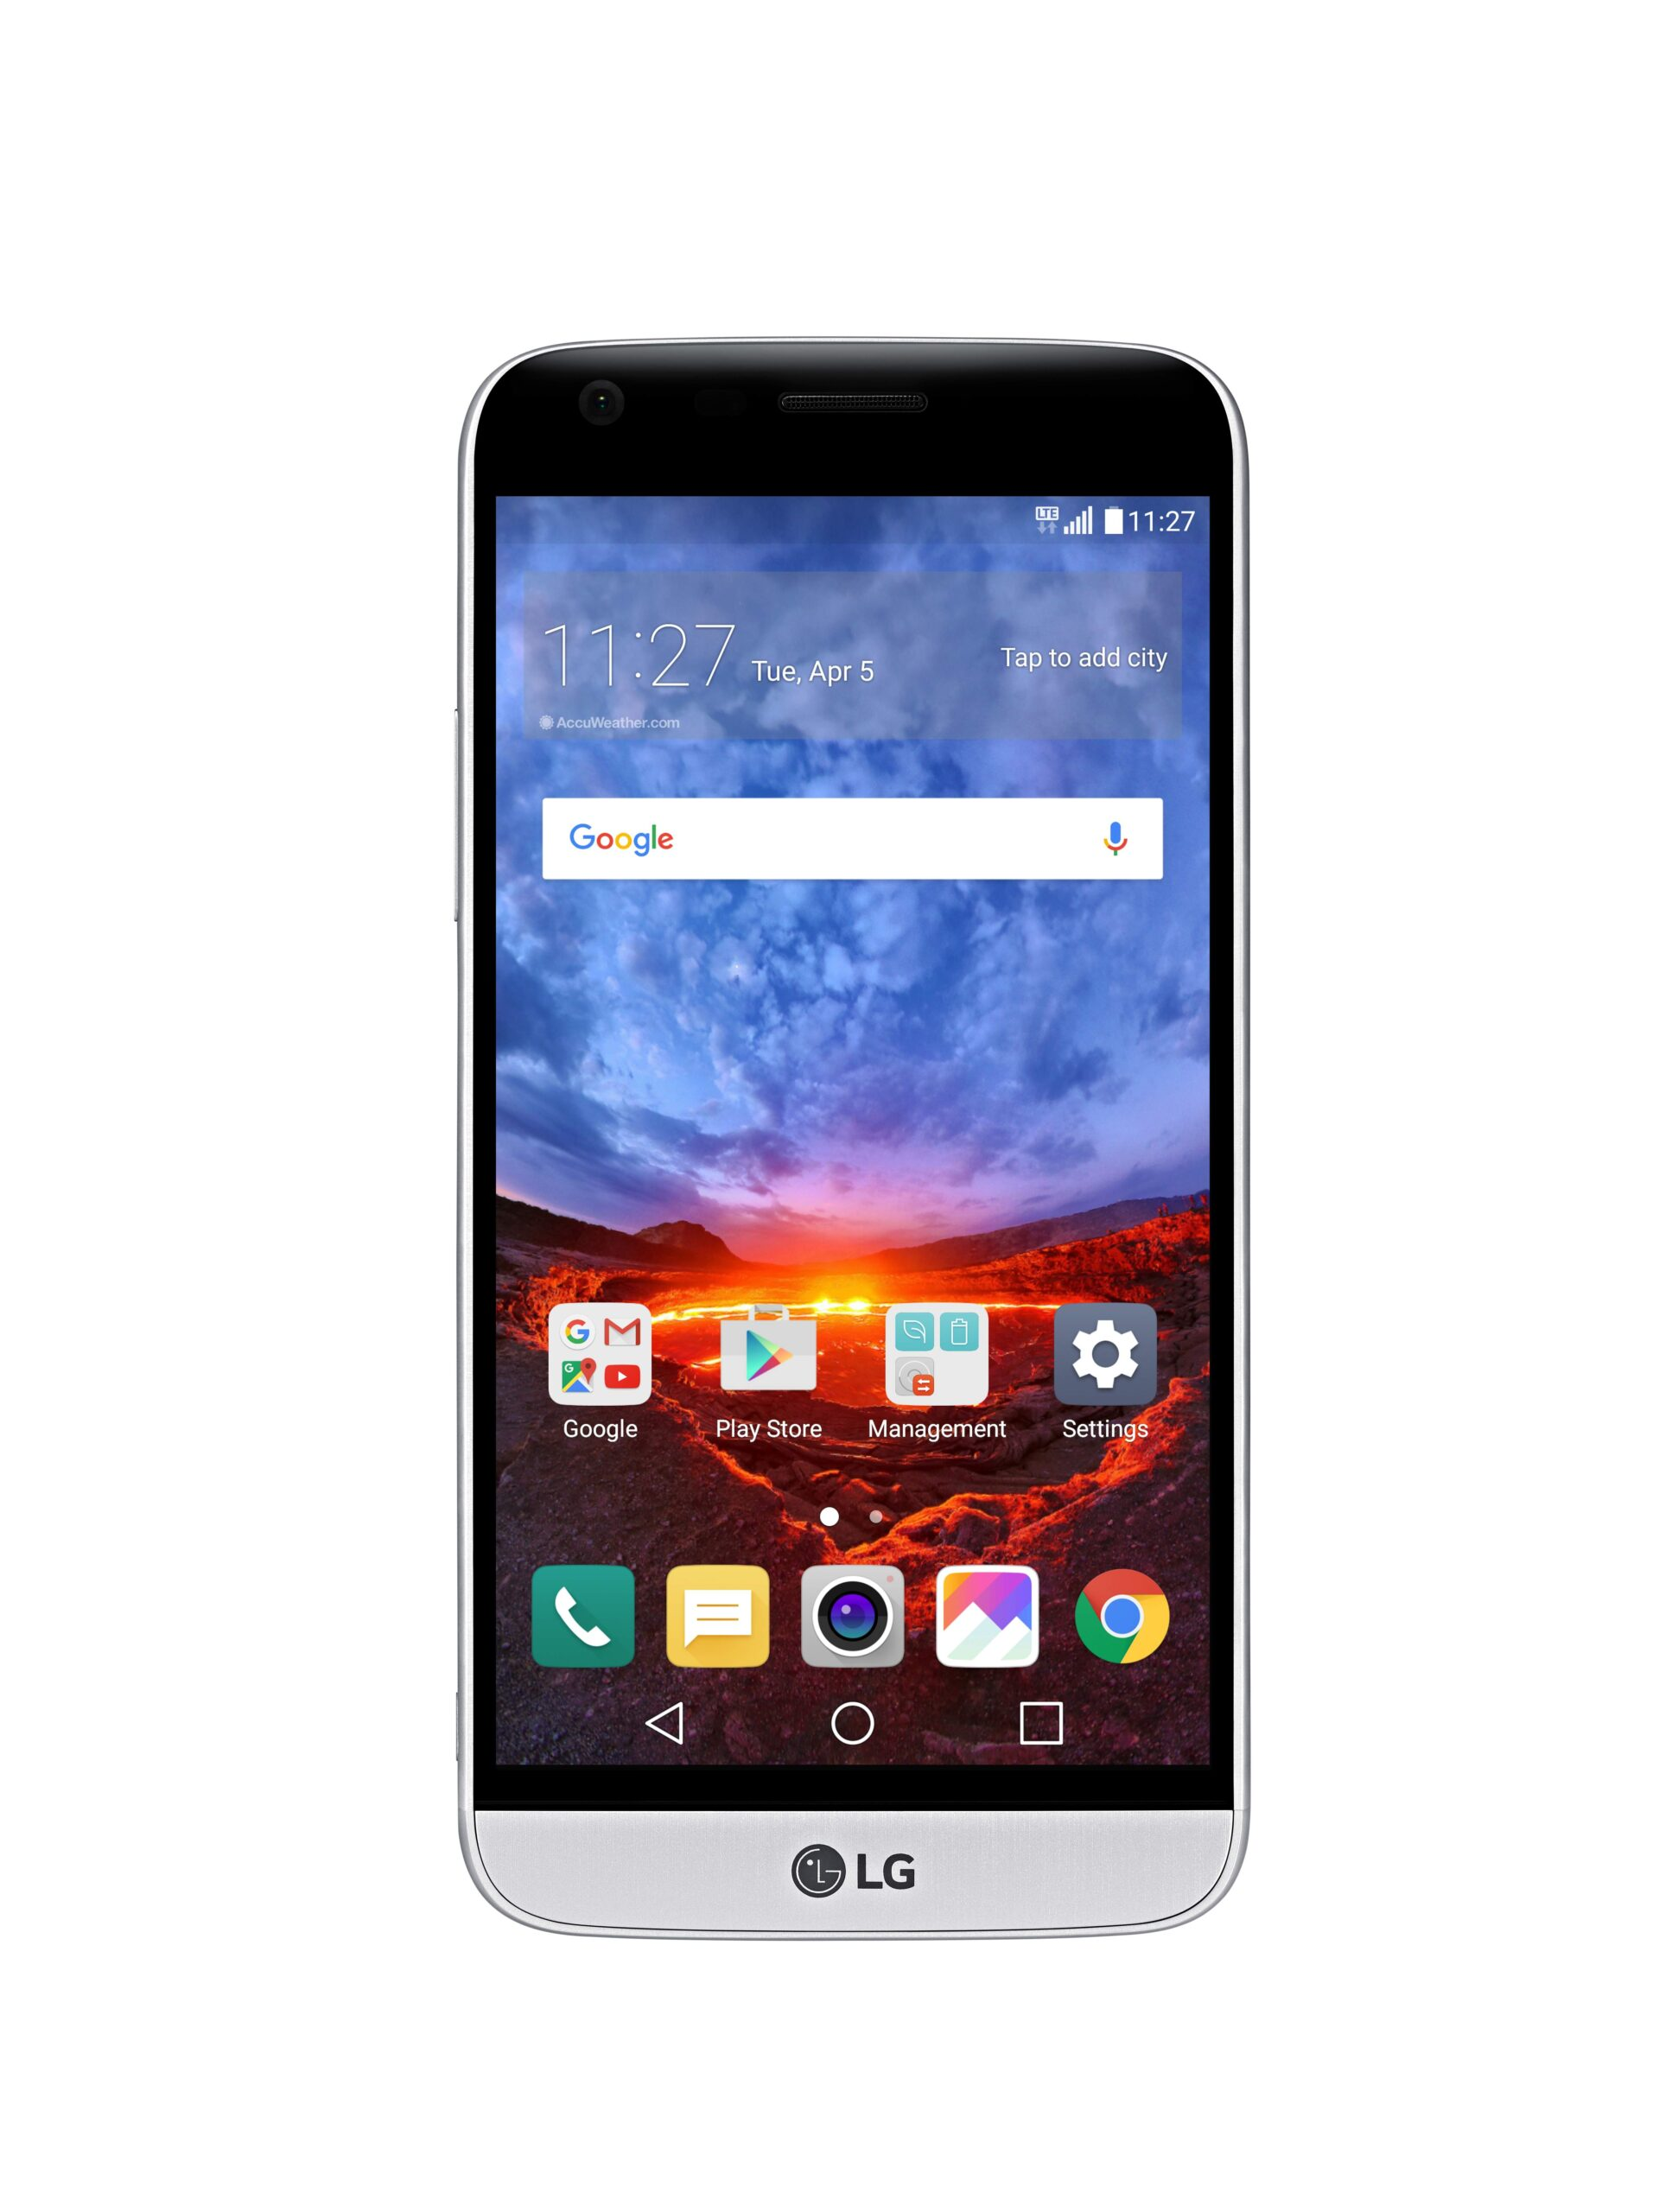 The front view of the LG G5 in Silver with the new 360-degree VR wallpaper displaying the crest of a volcano